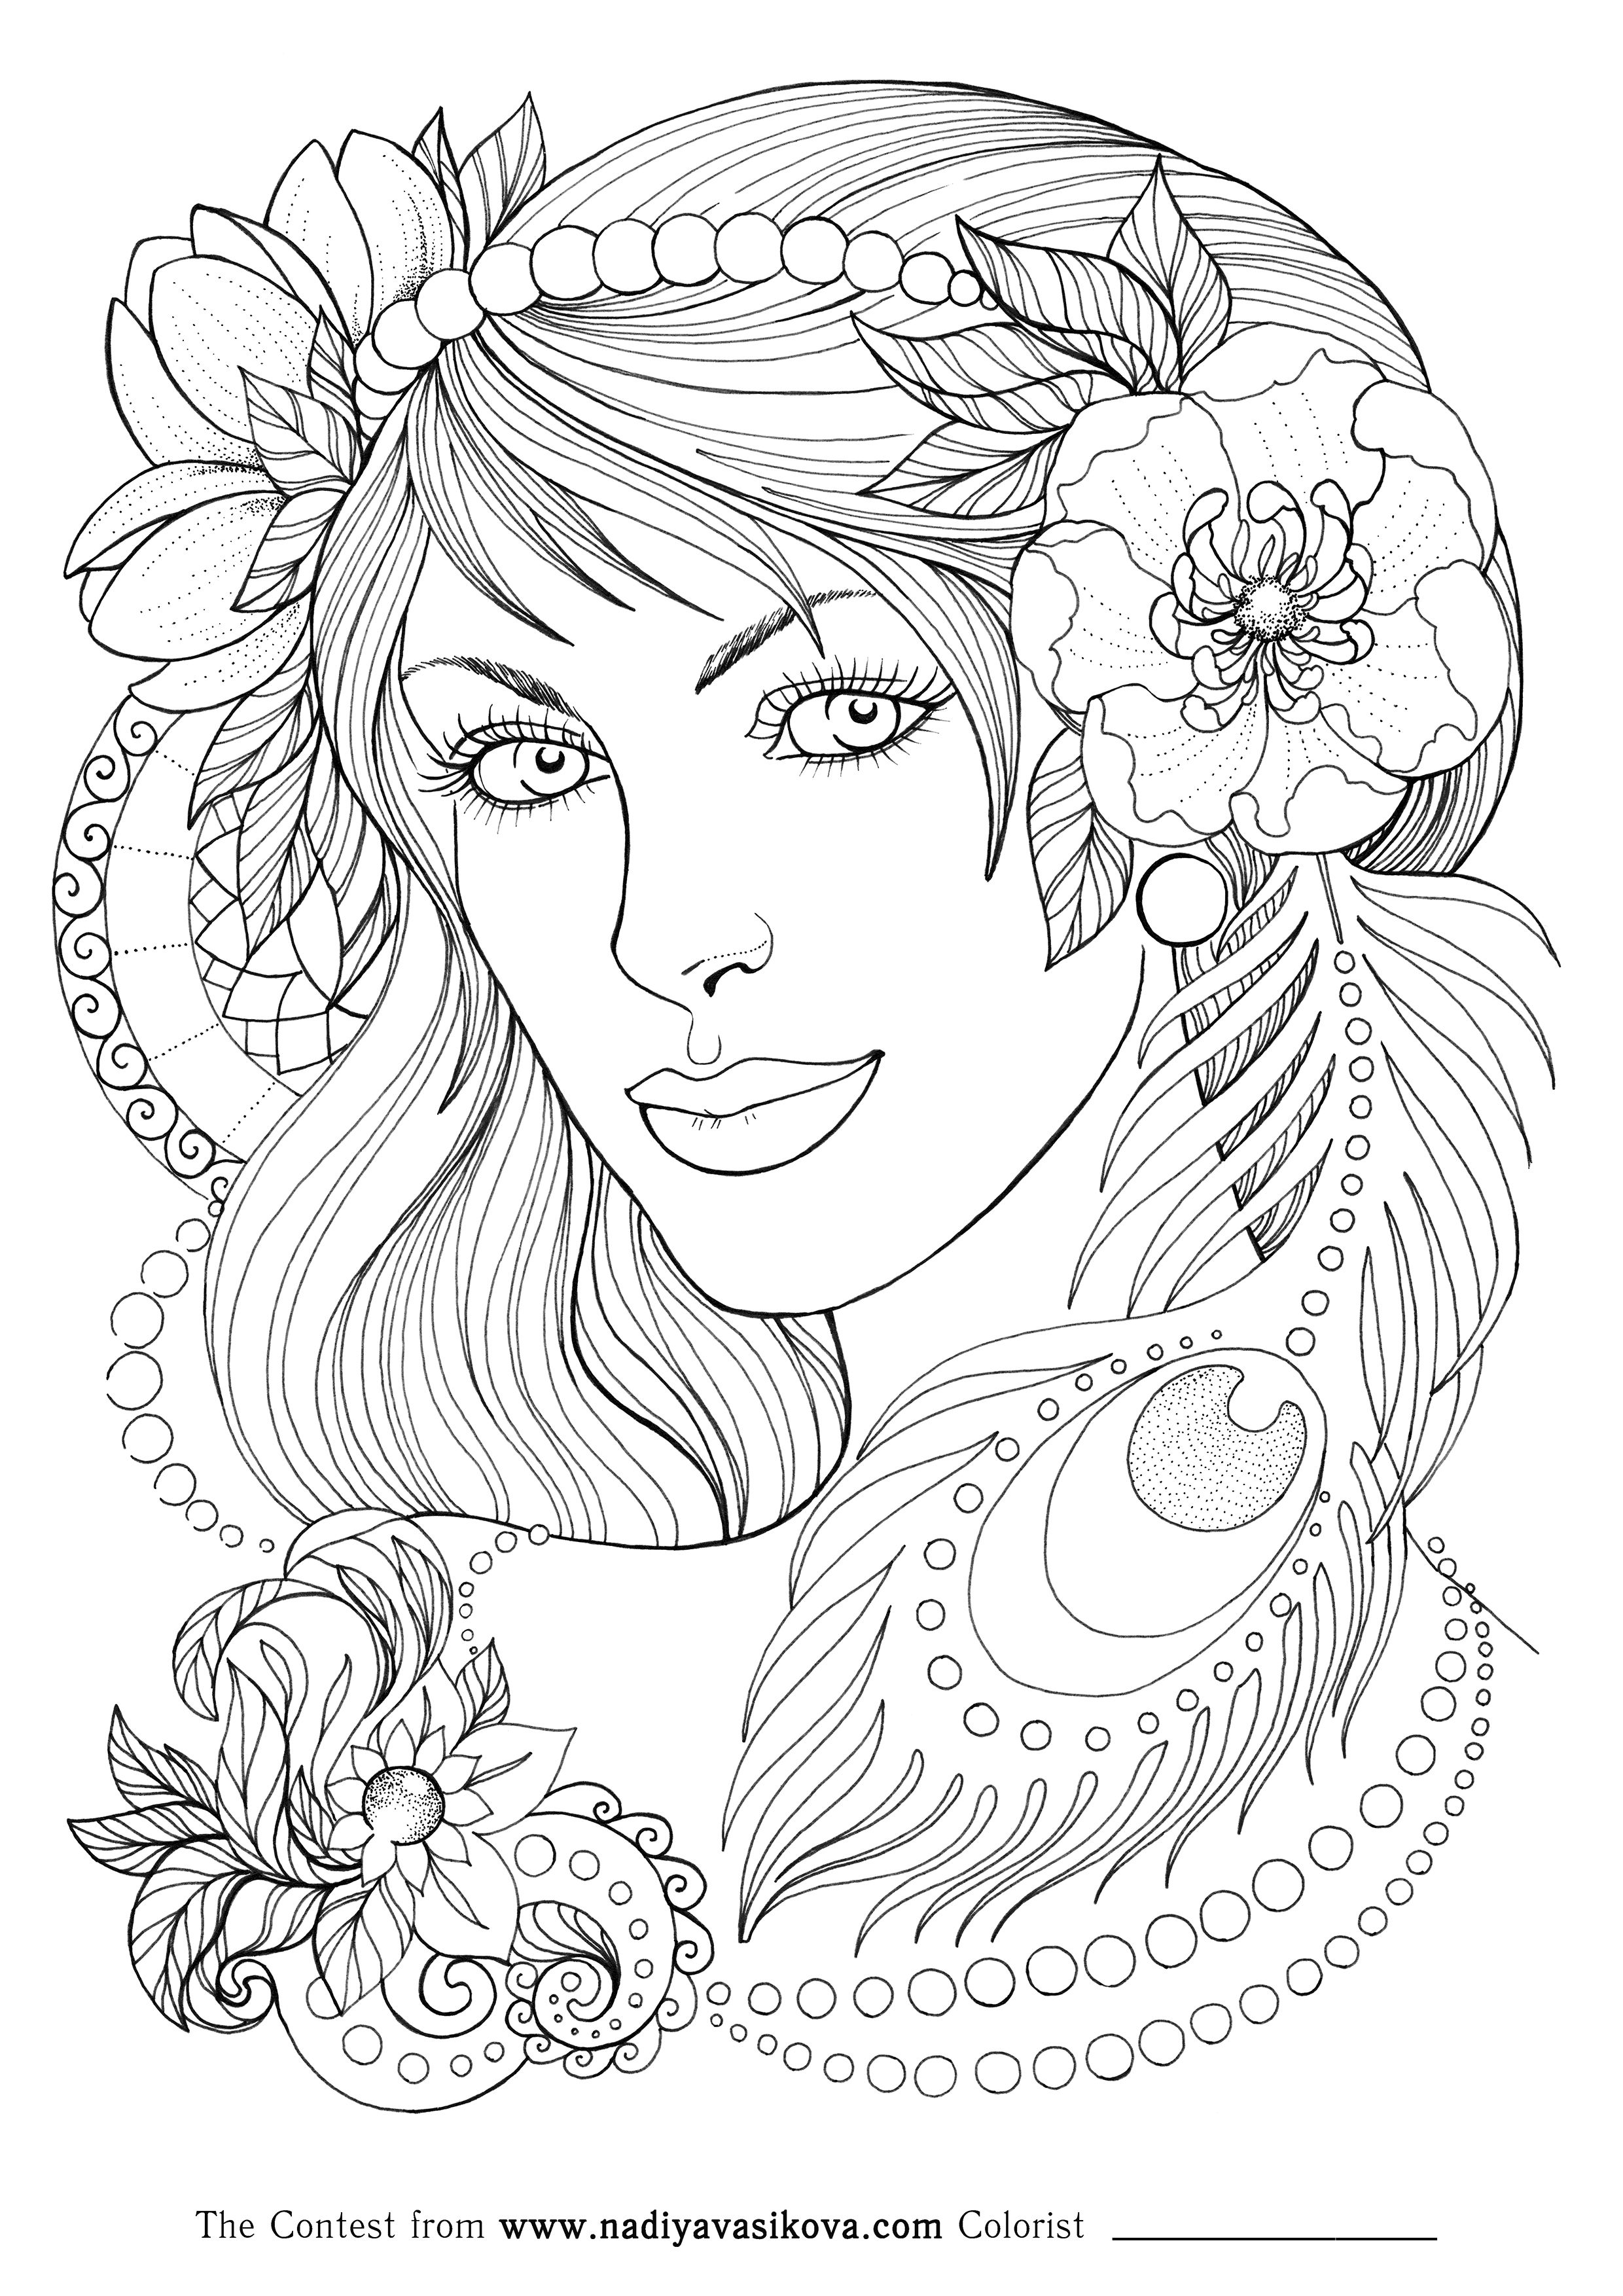 Pearl Beads Contest Jpg 2480 3508 Dance Coloring Pages Coloring Pages Inspirational Coloring Pages